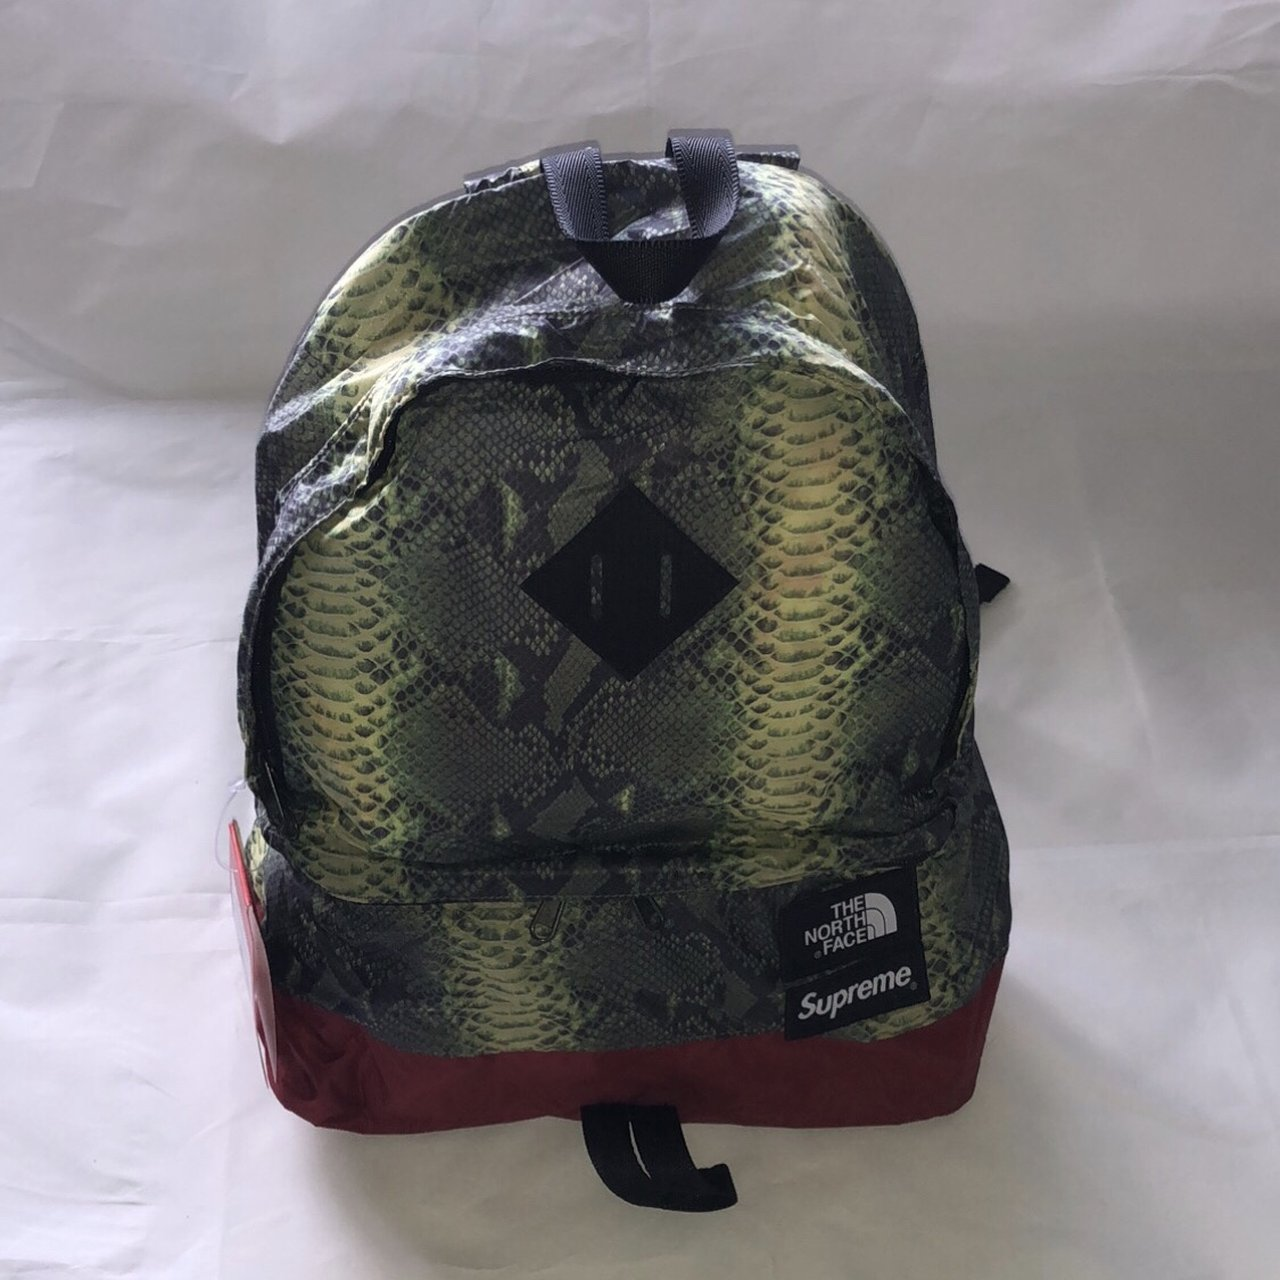 315fc6393a3e ... North Face Supreme Backpack Snakeskin biggest discount a2bc3 93d8e ...